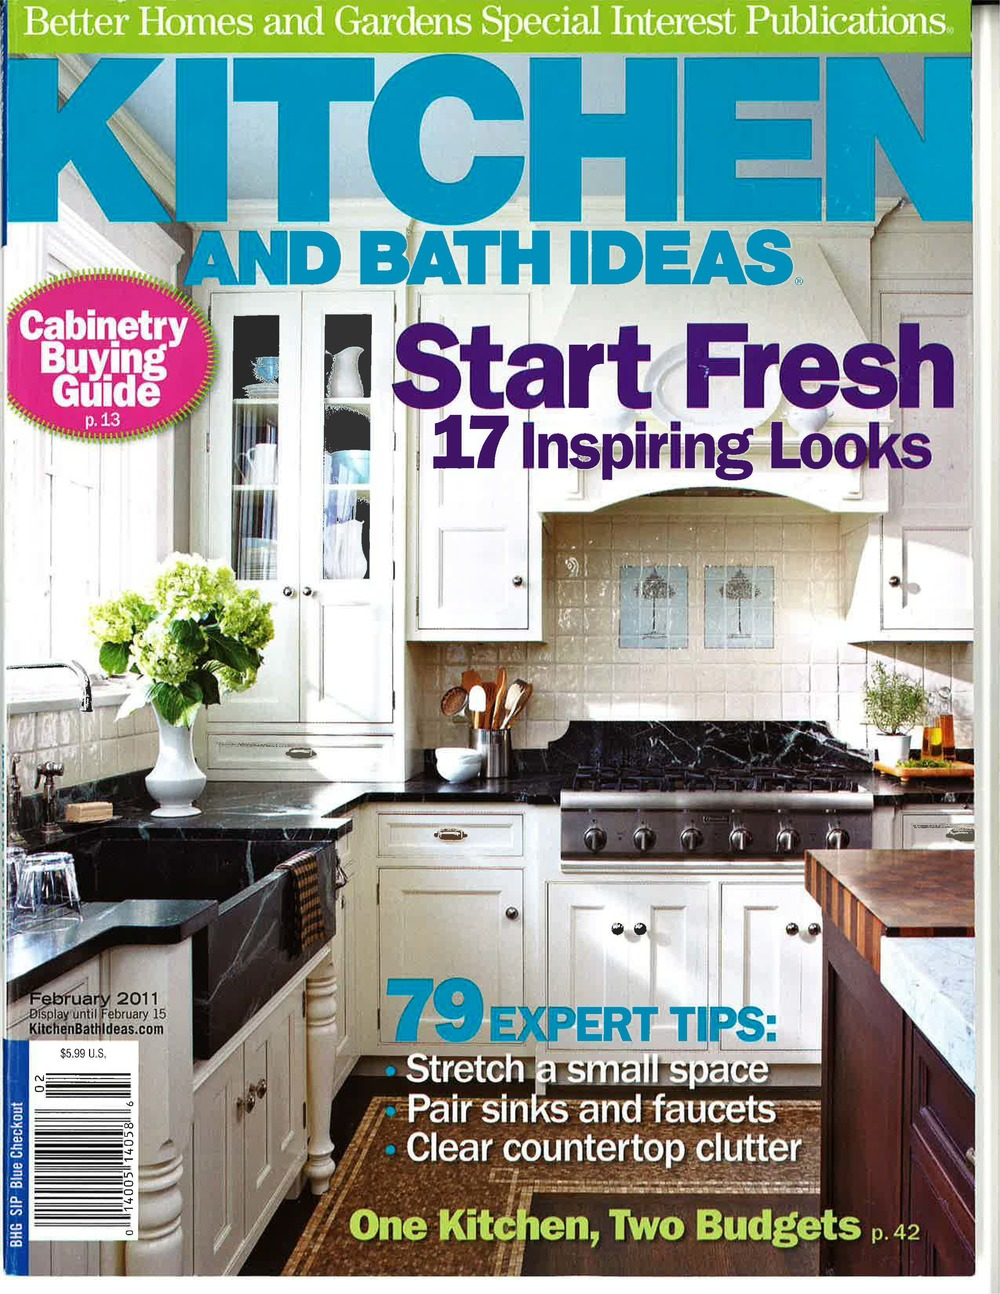 Feb2011_KitchenAndBathIdeas_Page_1.jpg